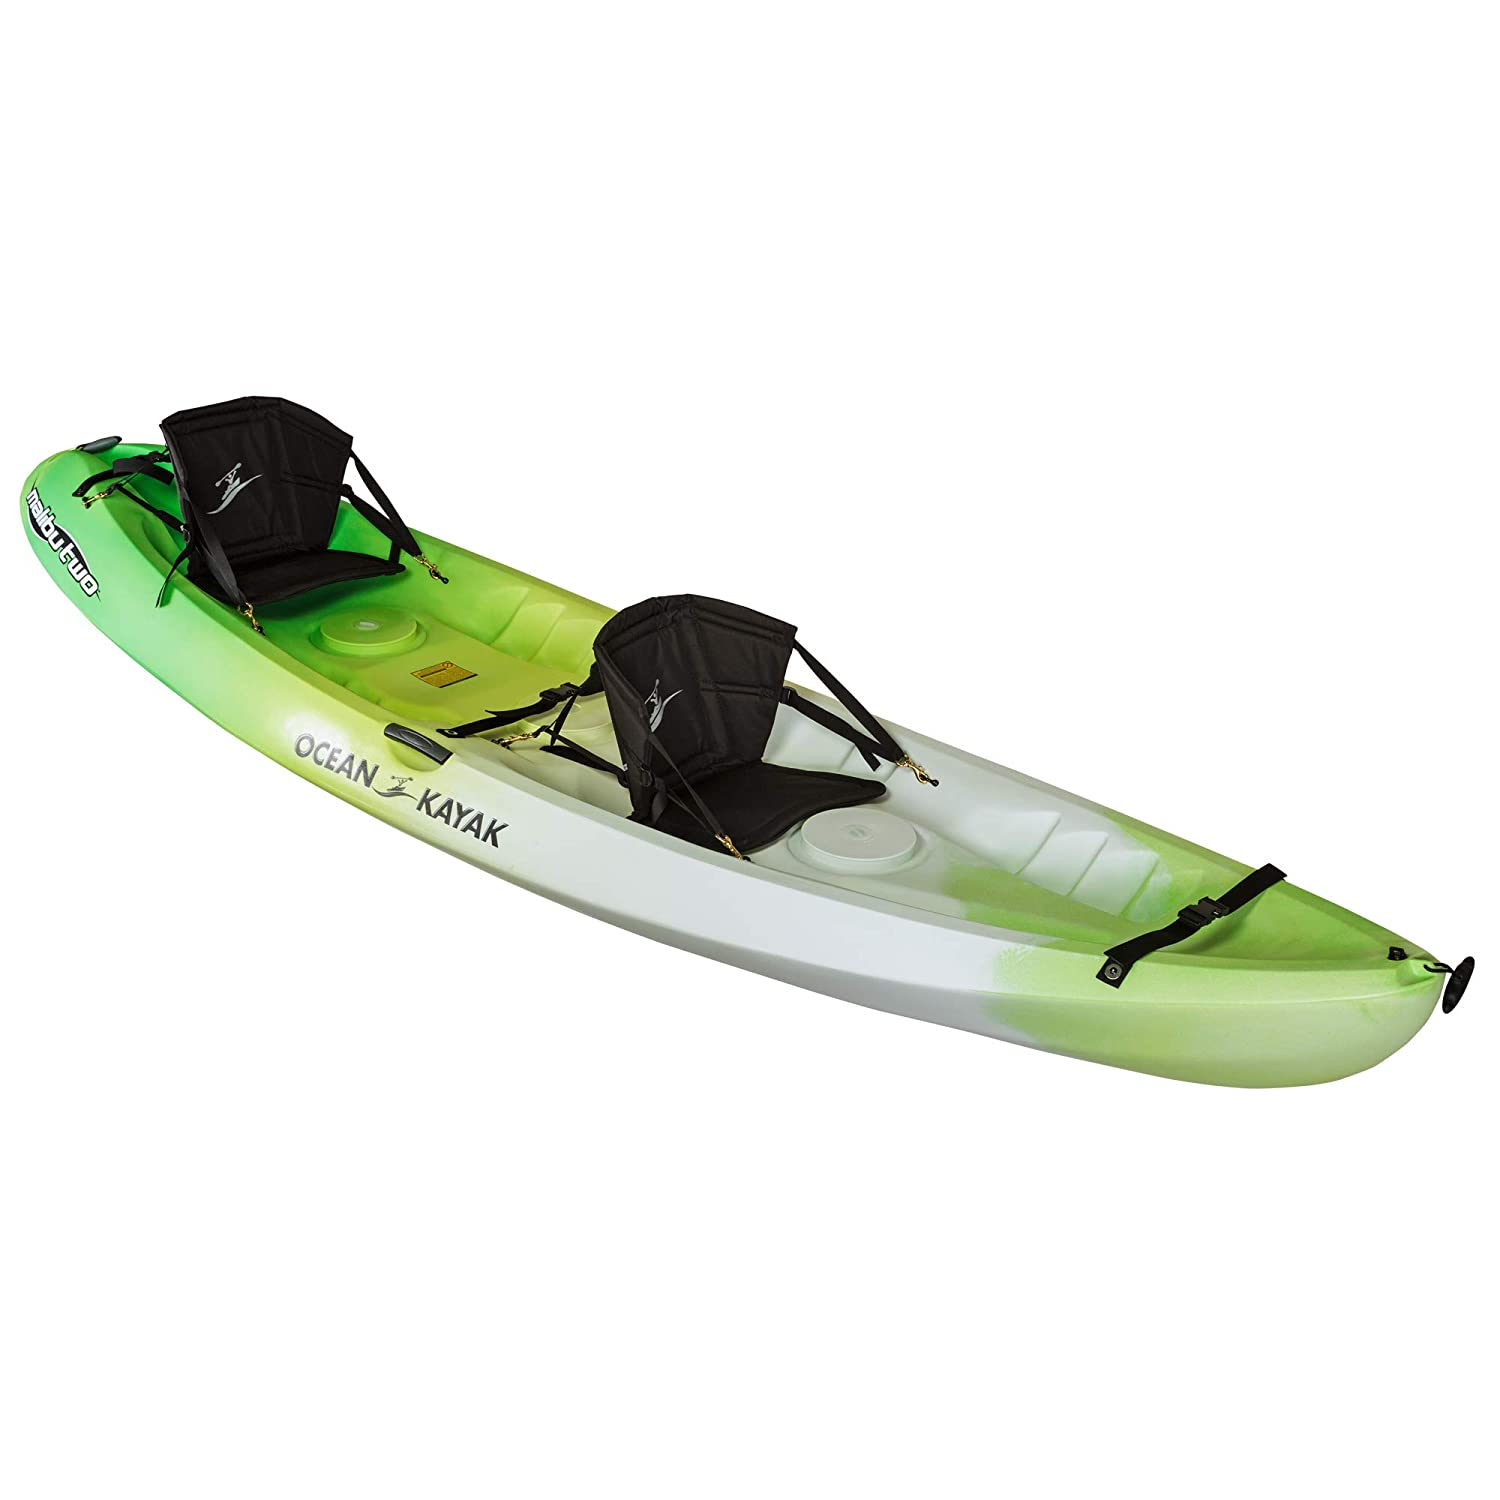 Ocean Kayak 12-Feet Malibu Two Tandem Kayak (Sit-on-Top) Review